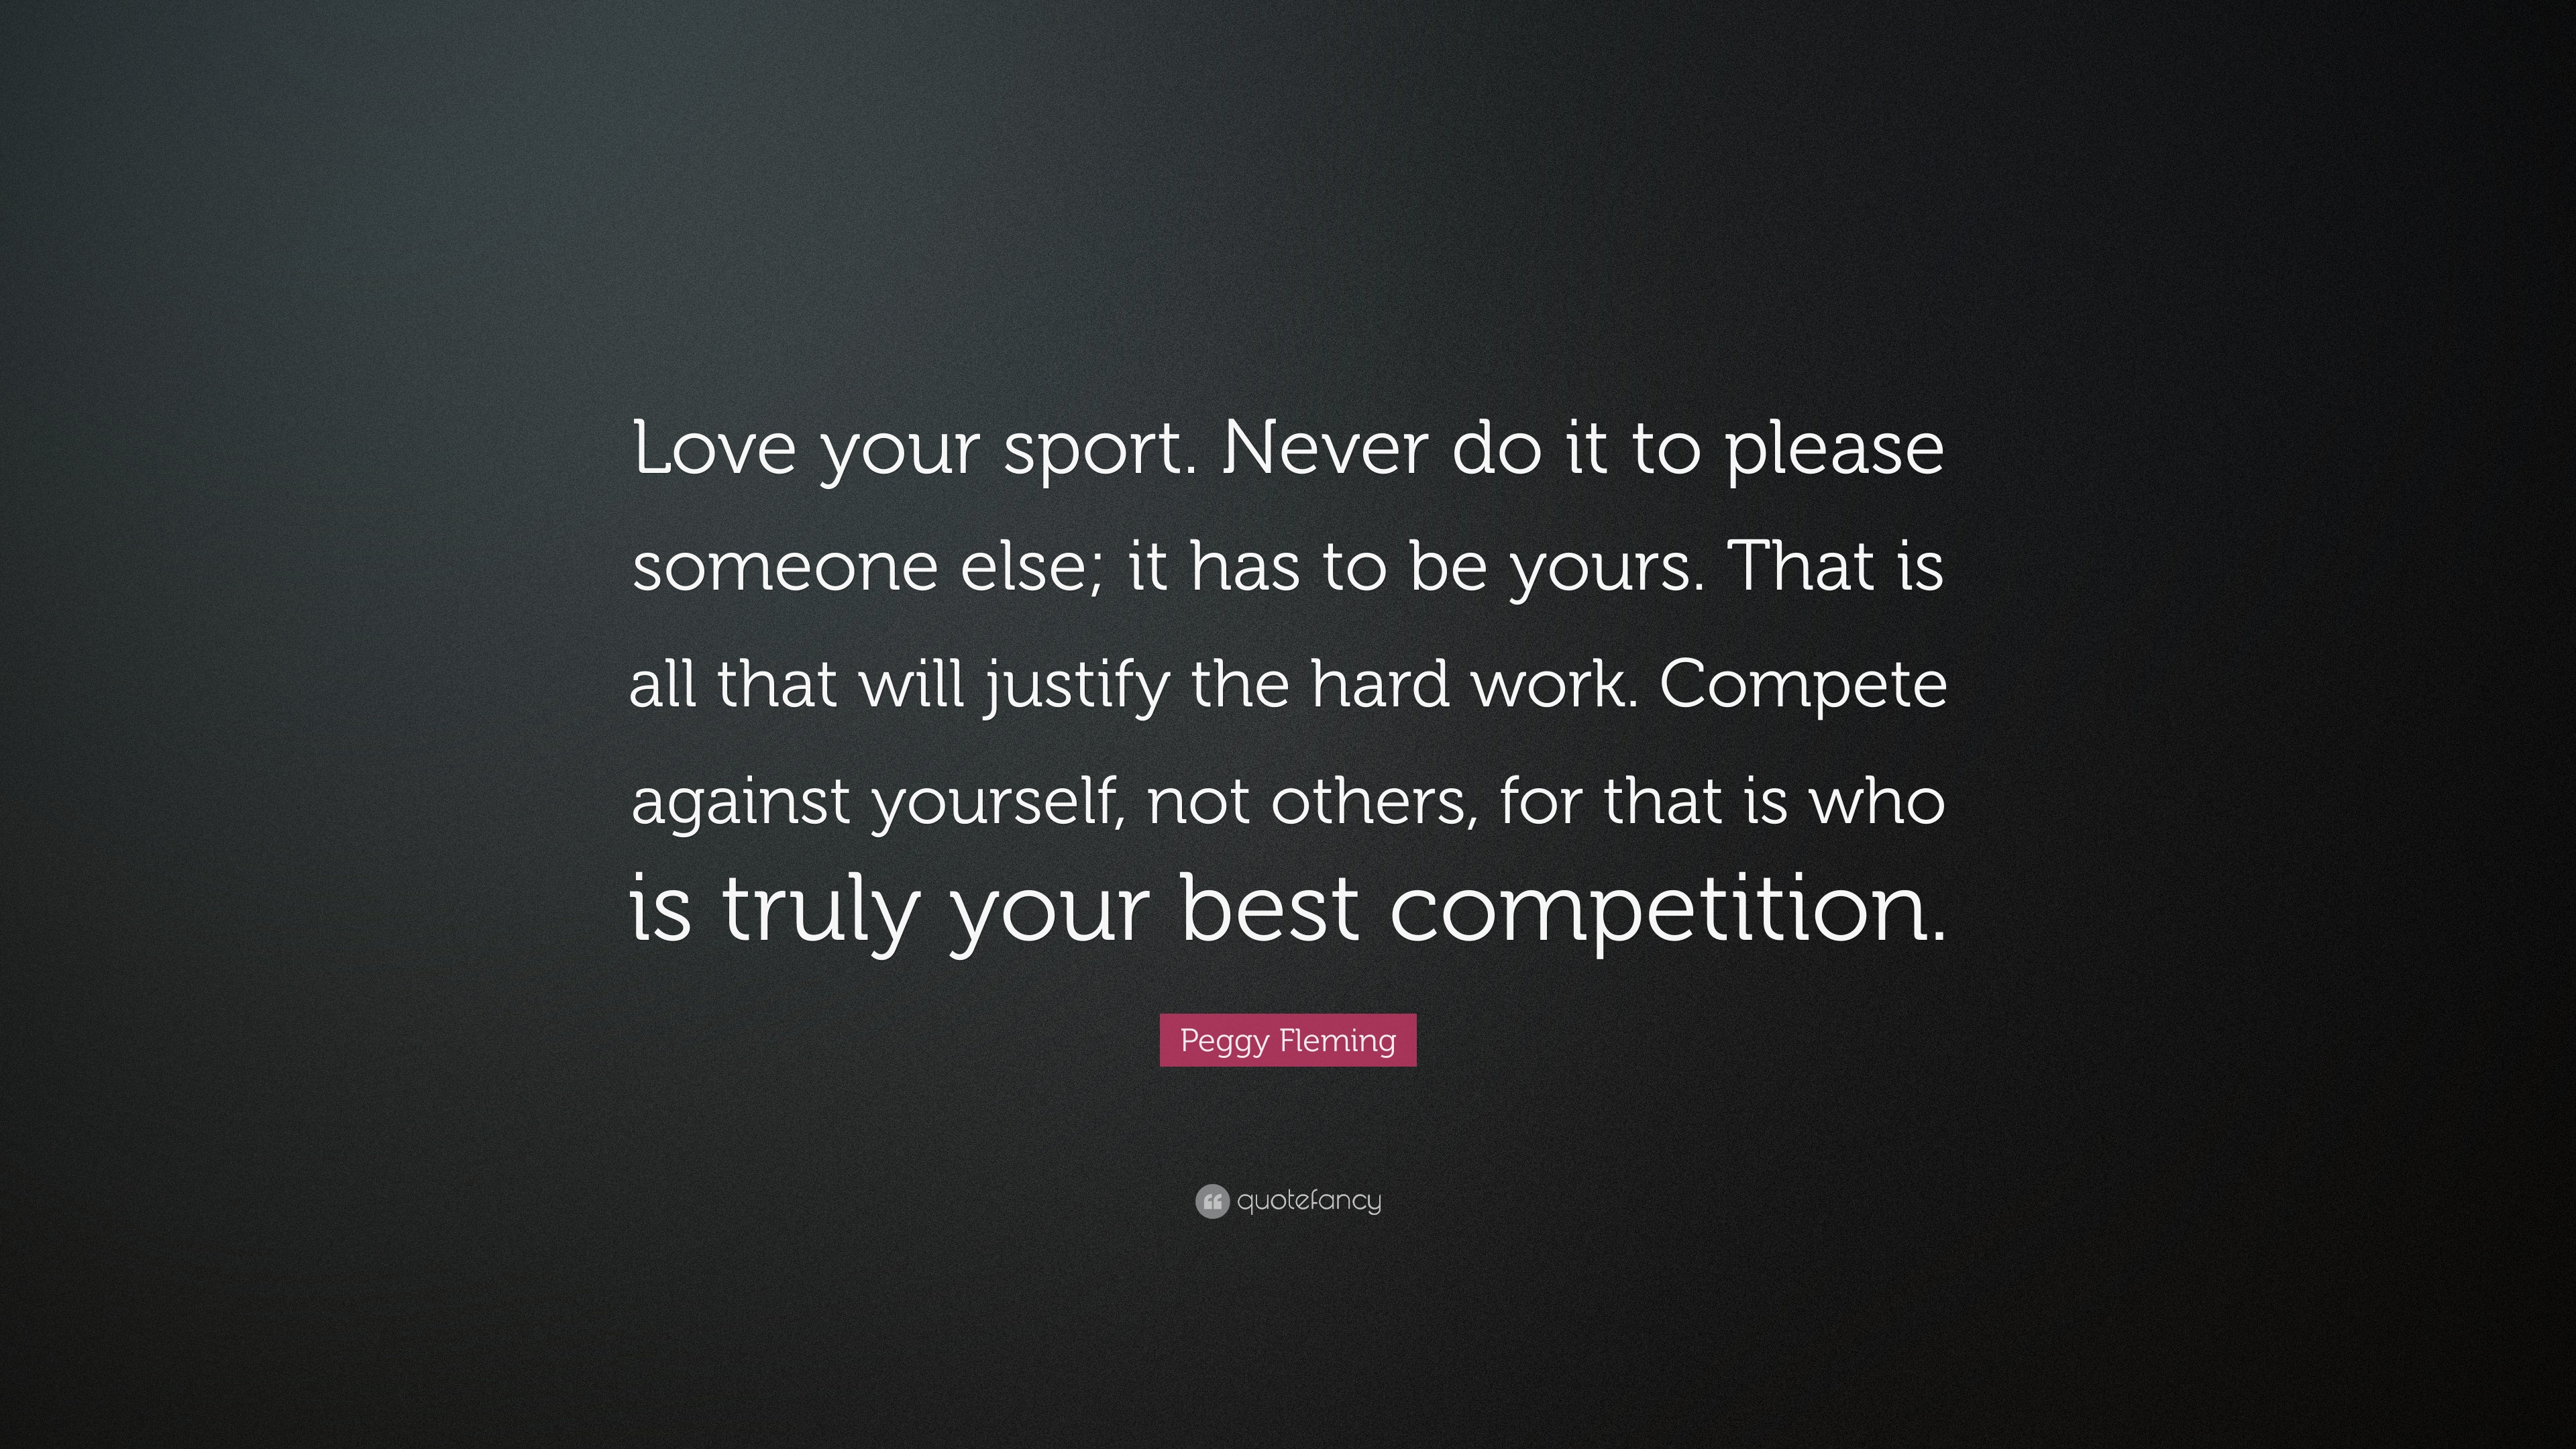 Peggy Fleming Quote: U201cLove Your Sport. Never Do It To Please Someone Else